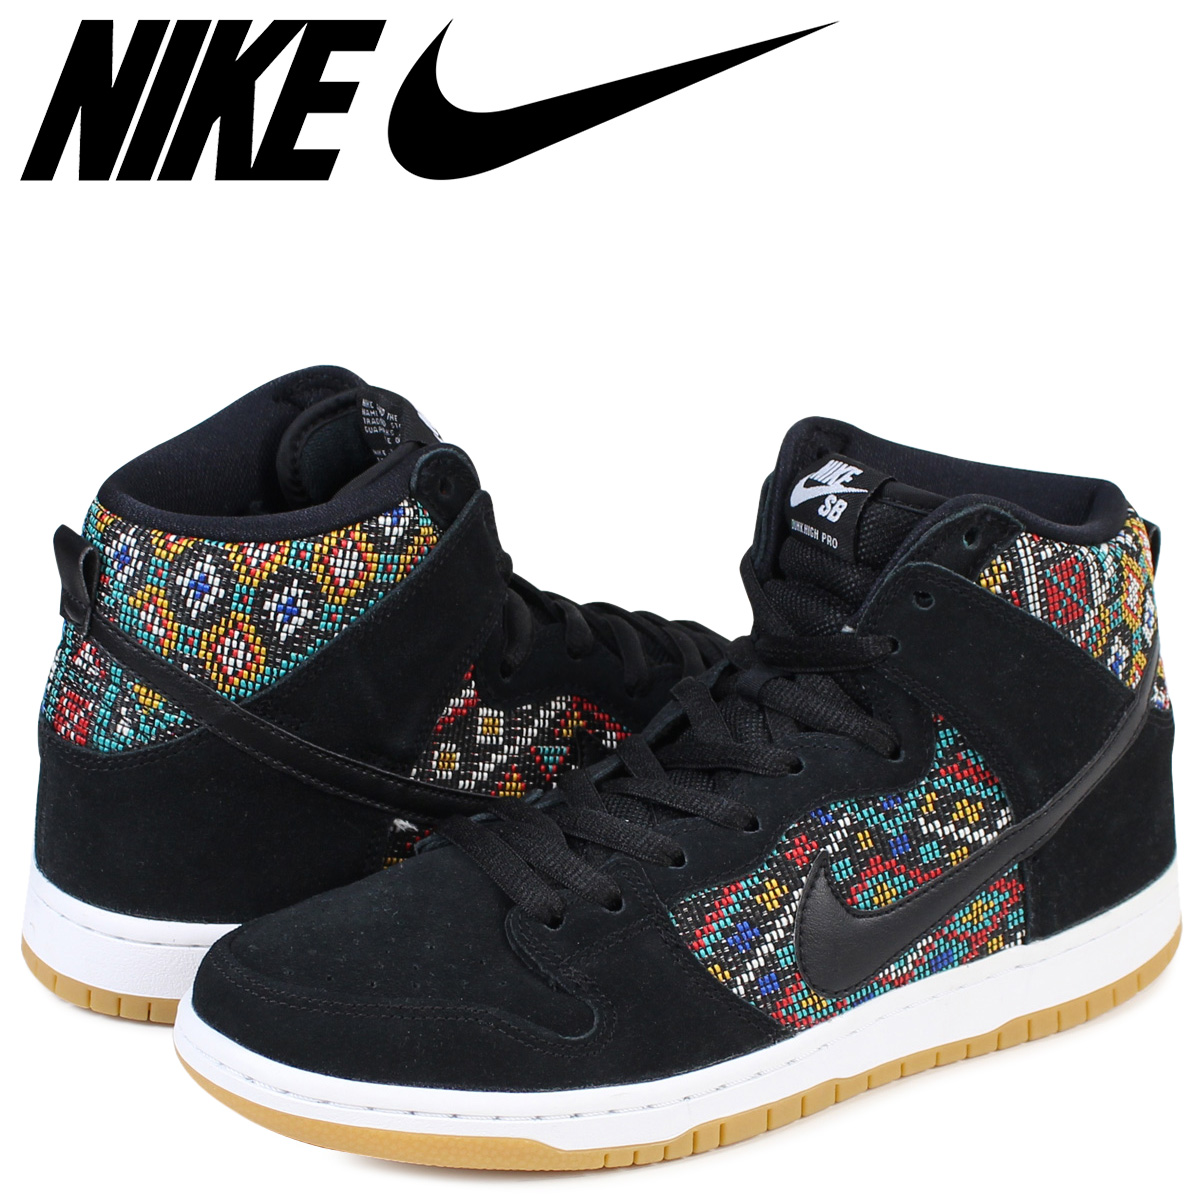 allsports nike sb dunk high premium seat cover nike dunk. Black Bedroom Furniture Sets. Home Design Ideas